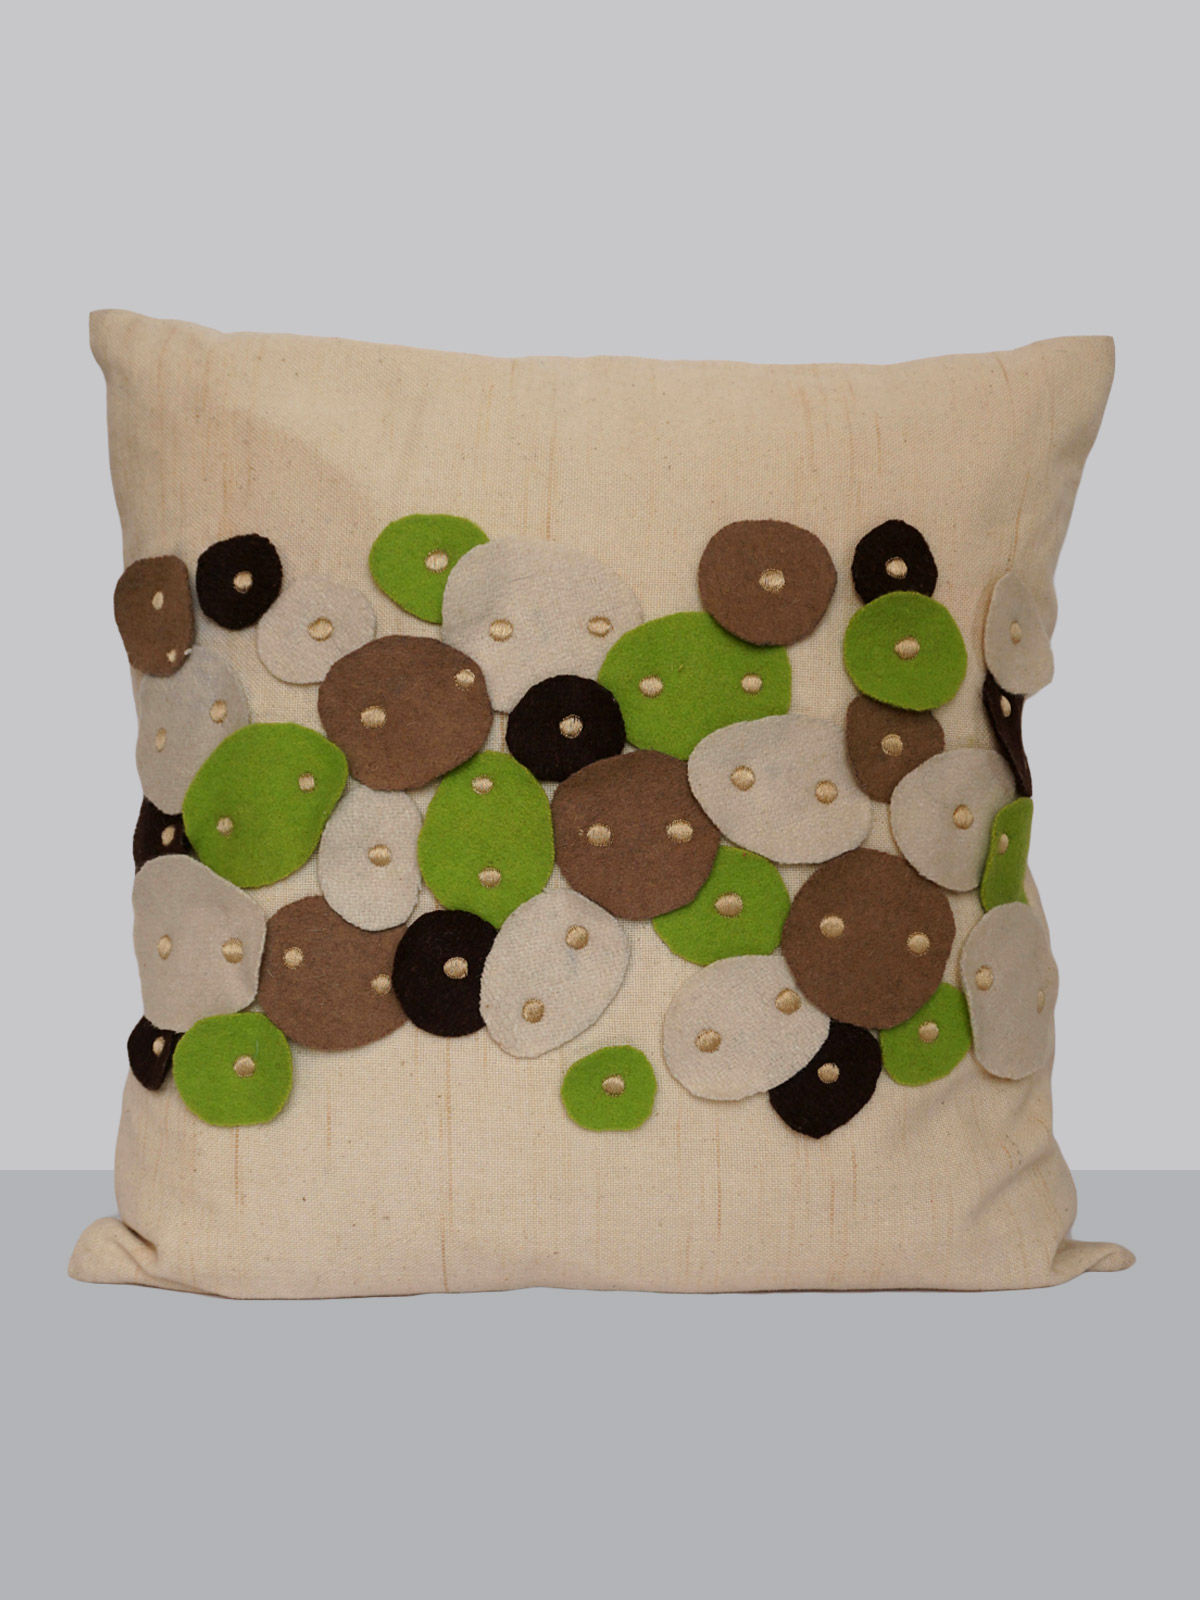 Off-white felt patchwork emroidered button pattern cotton cushion cover